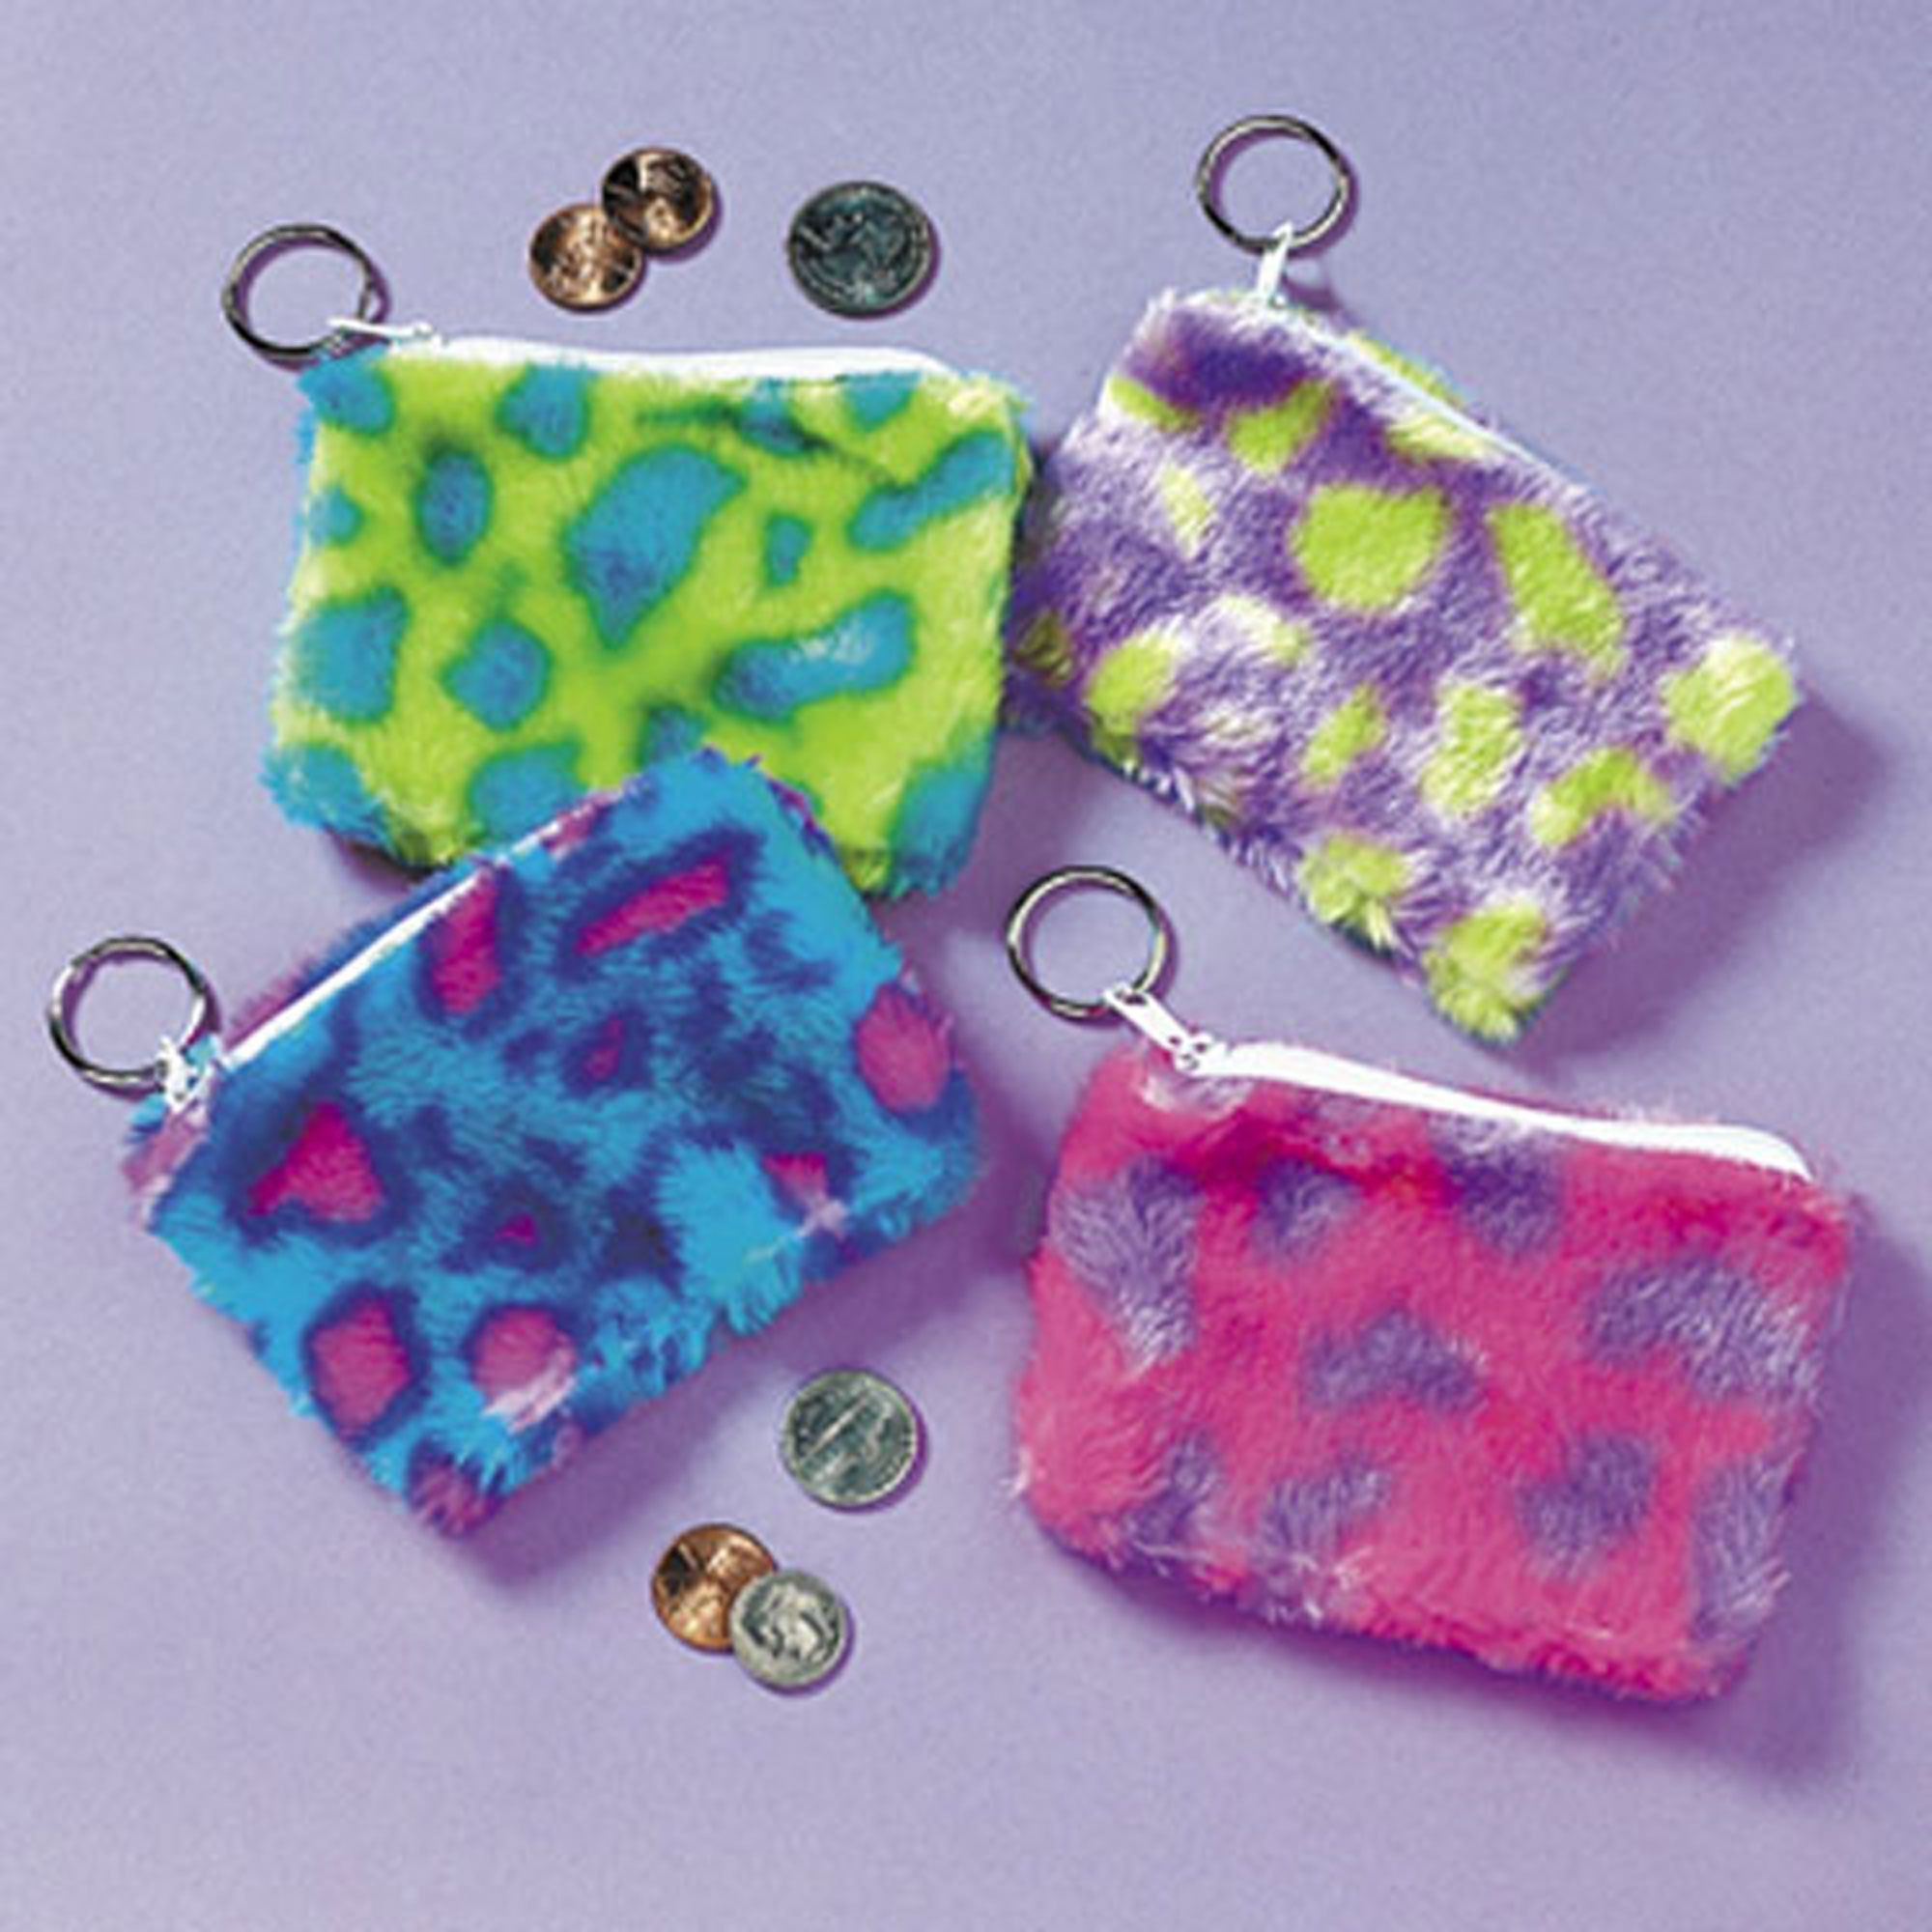 One Dozen Plush Spotted Coin Purse Key Chains #19/222